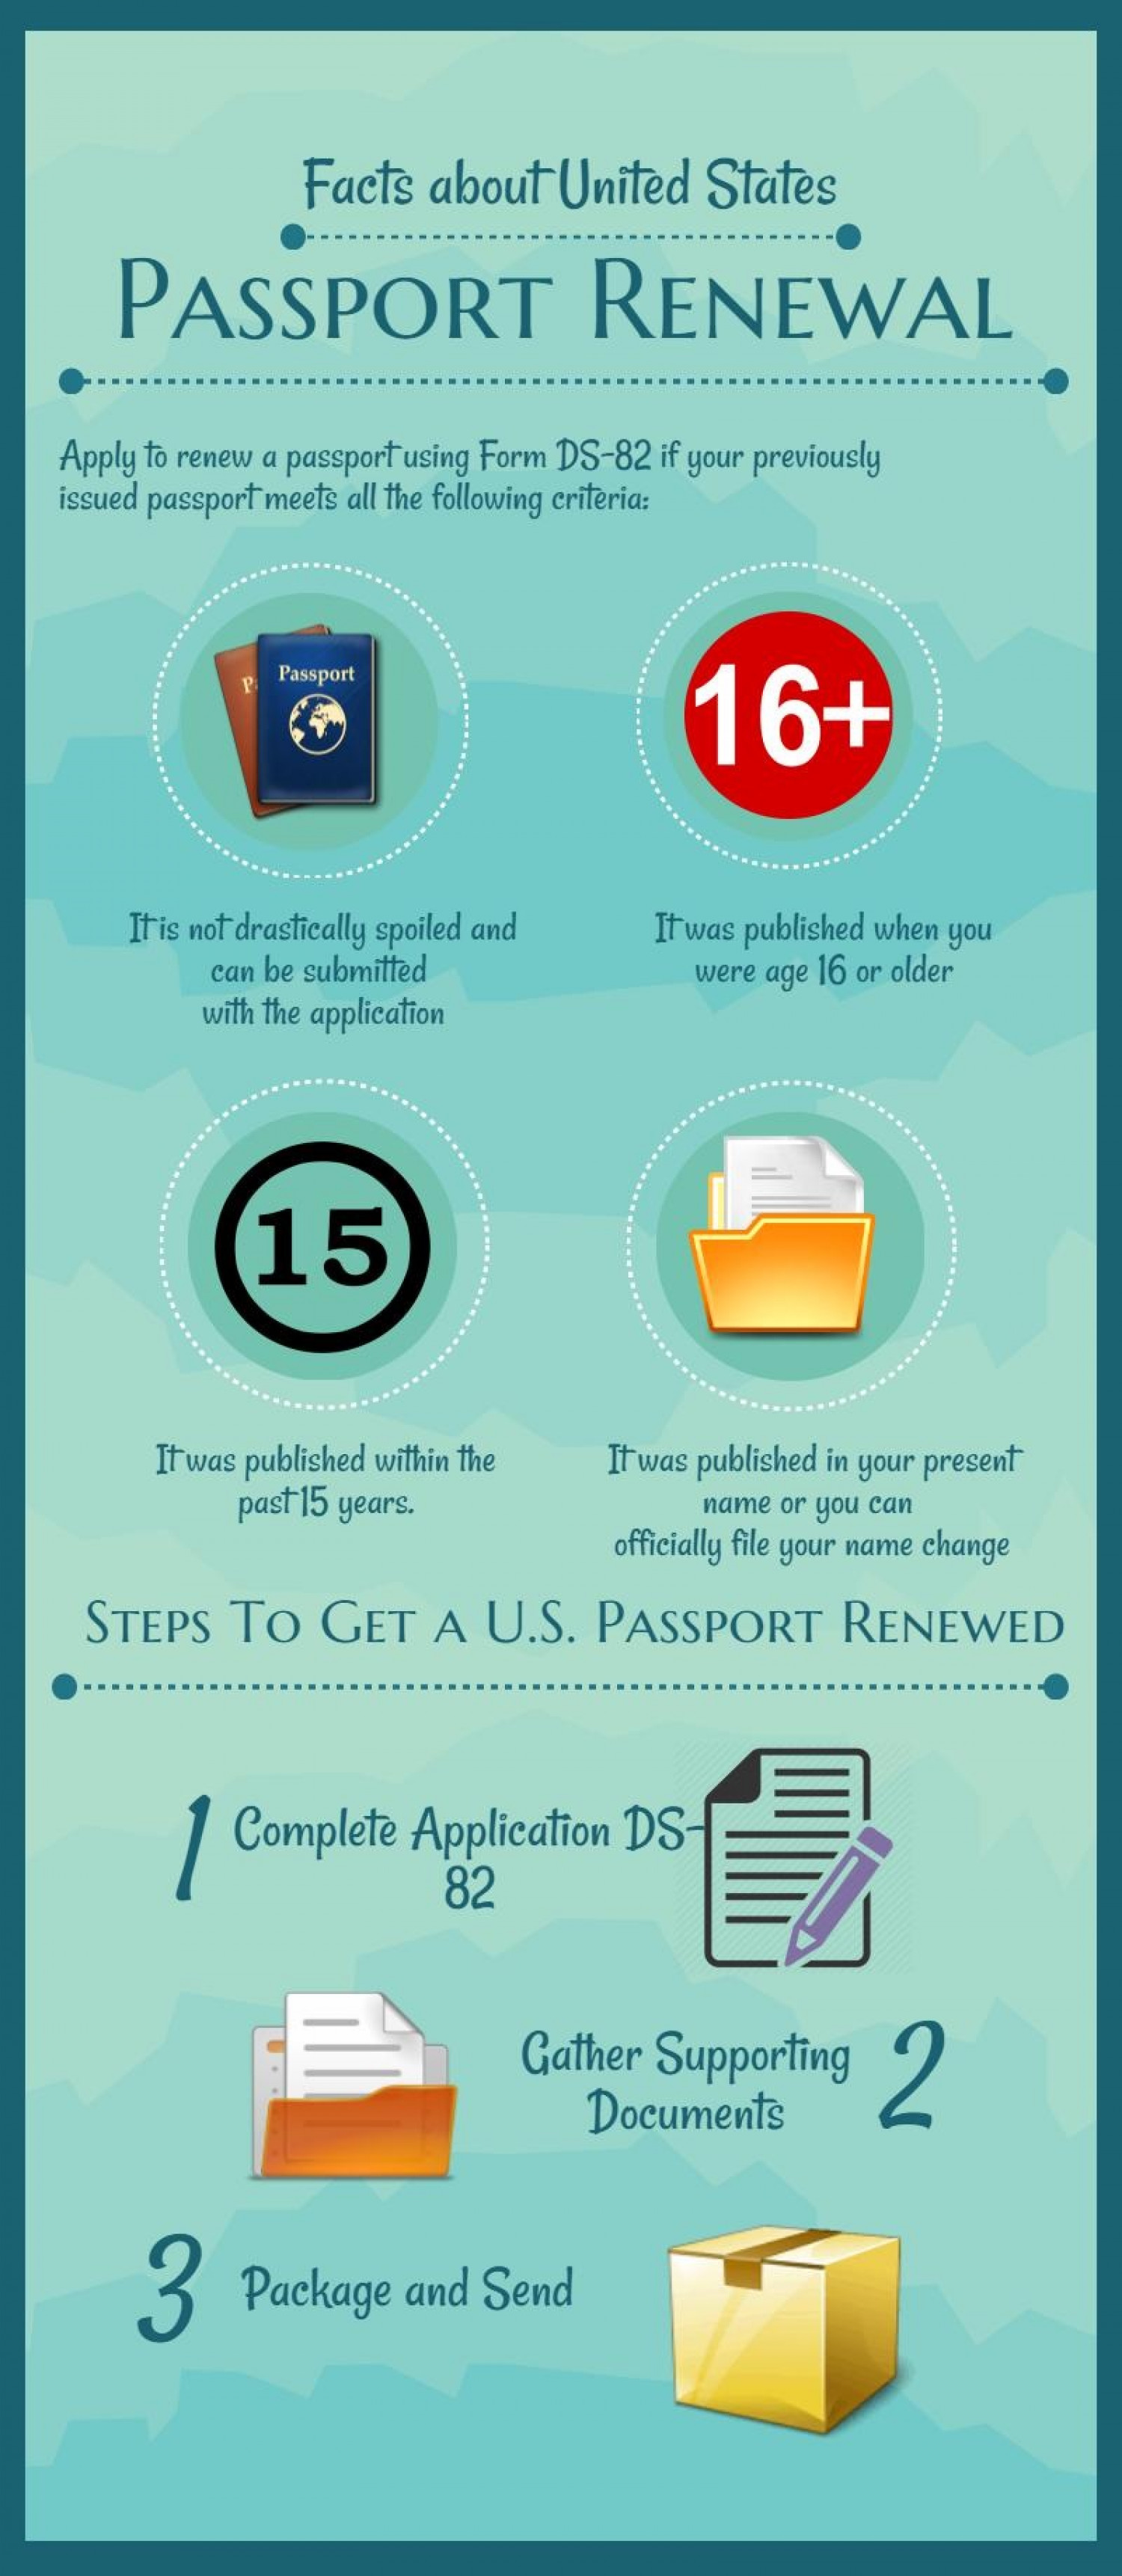 Facts about us passport renewal visual facts about us passport renewal infographic falaconquin